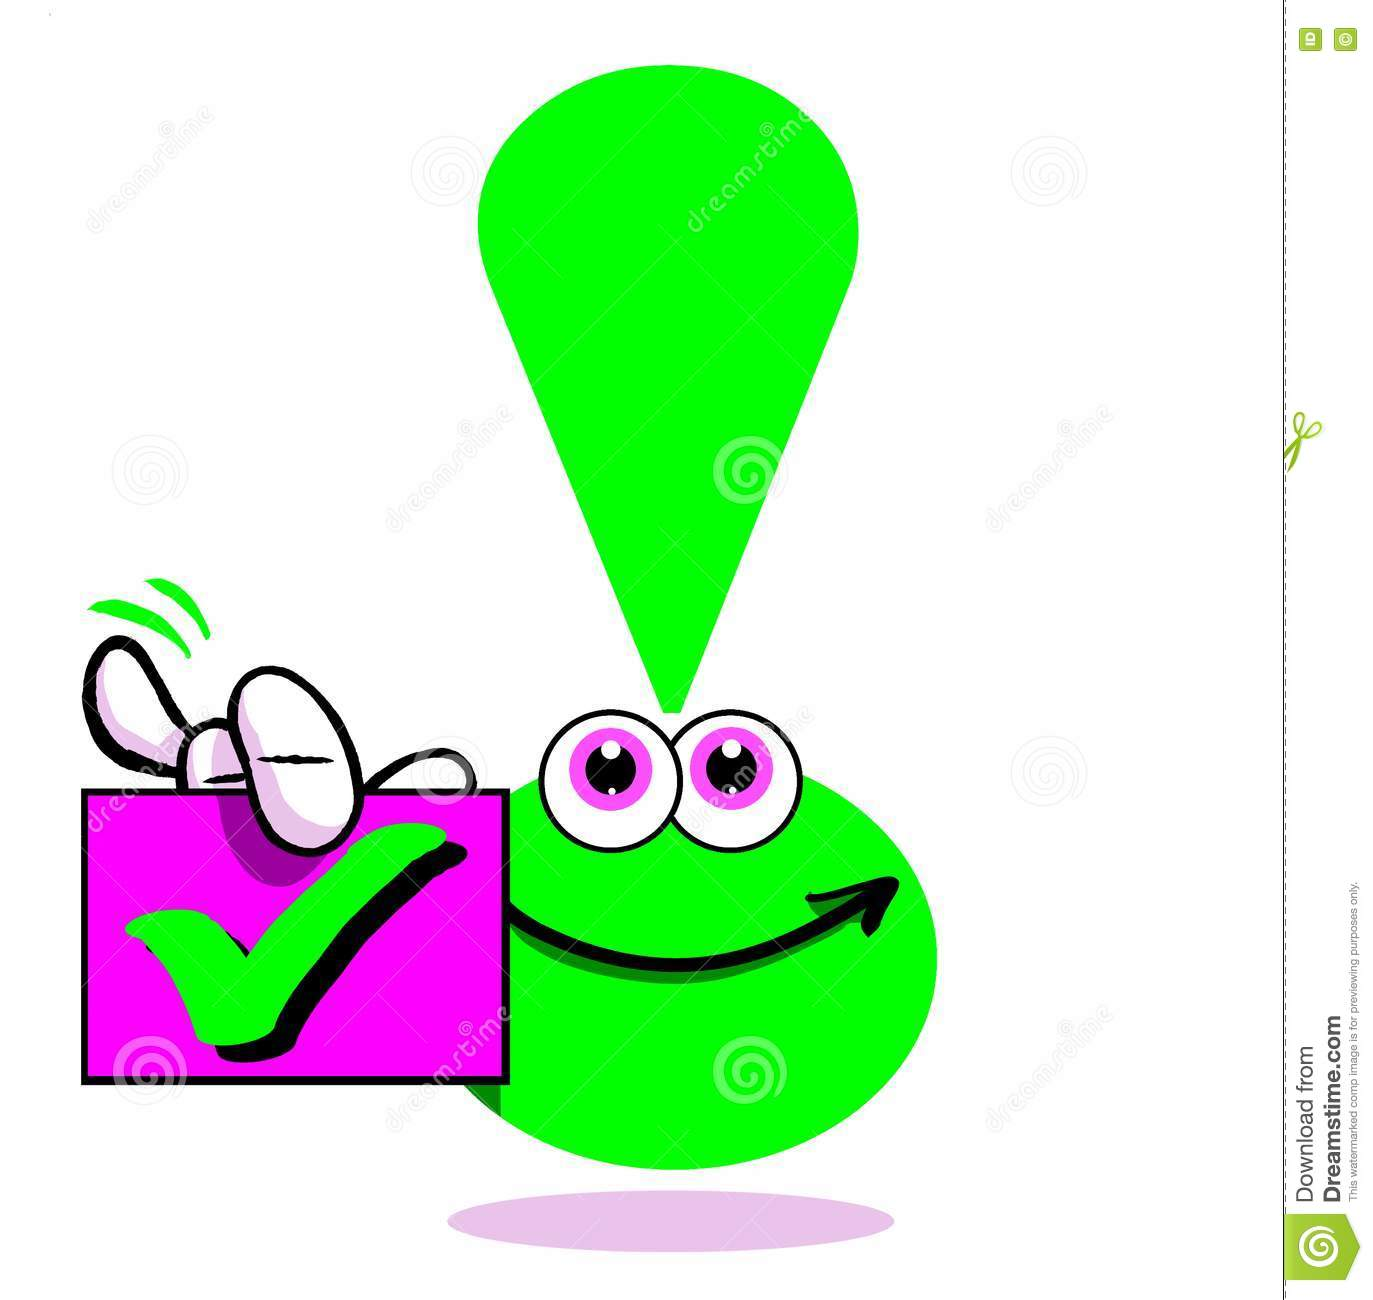 green exclamation point with check mark stock illustration